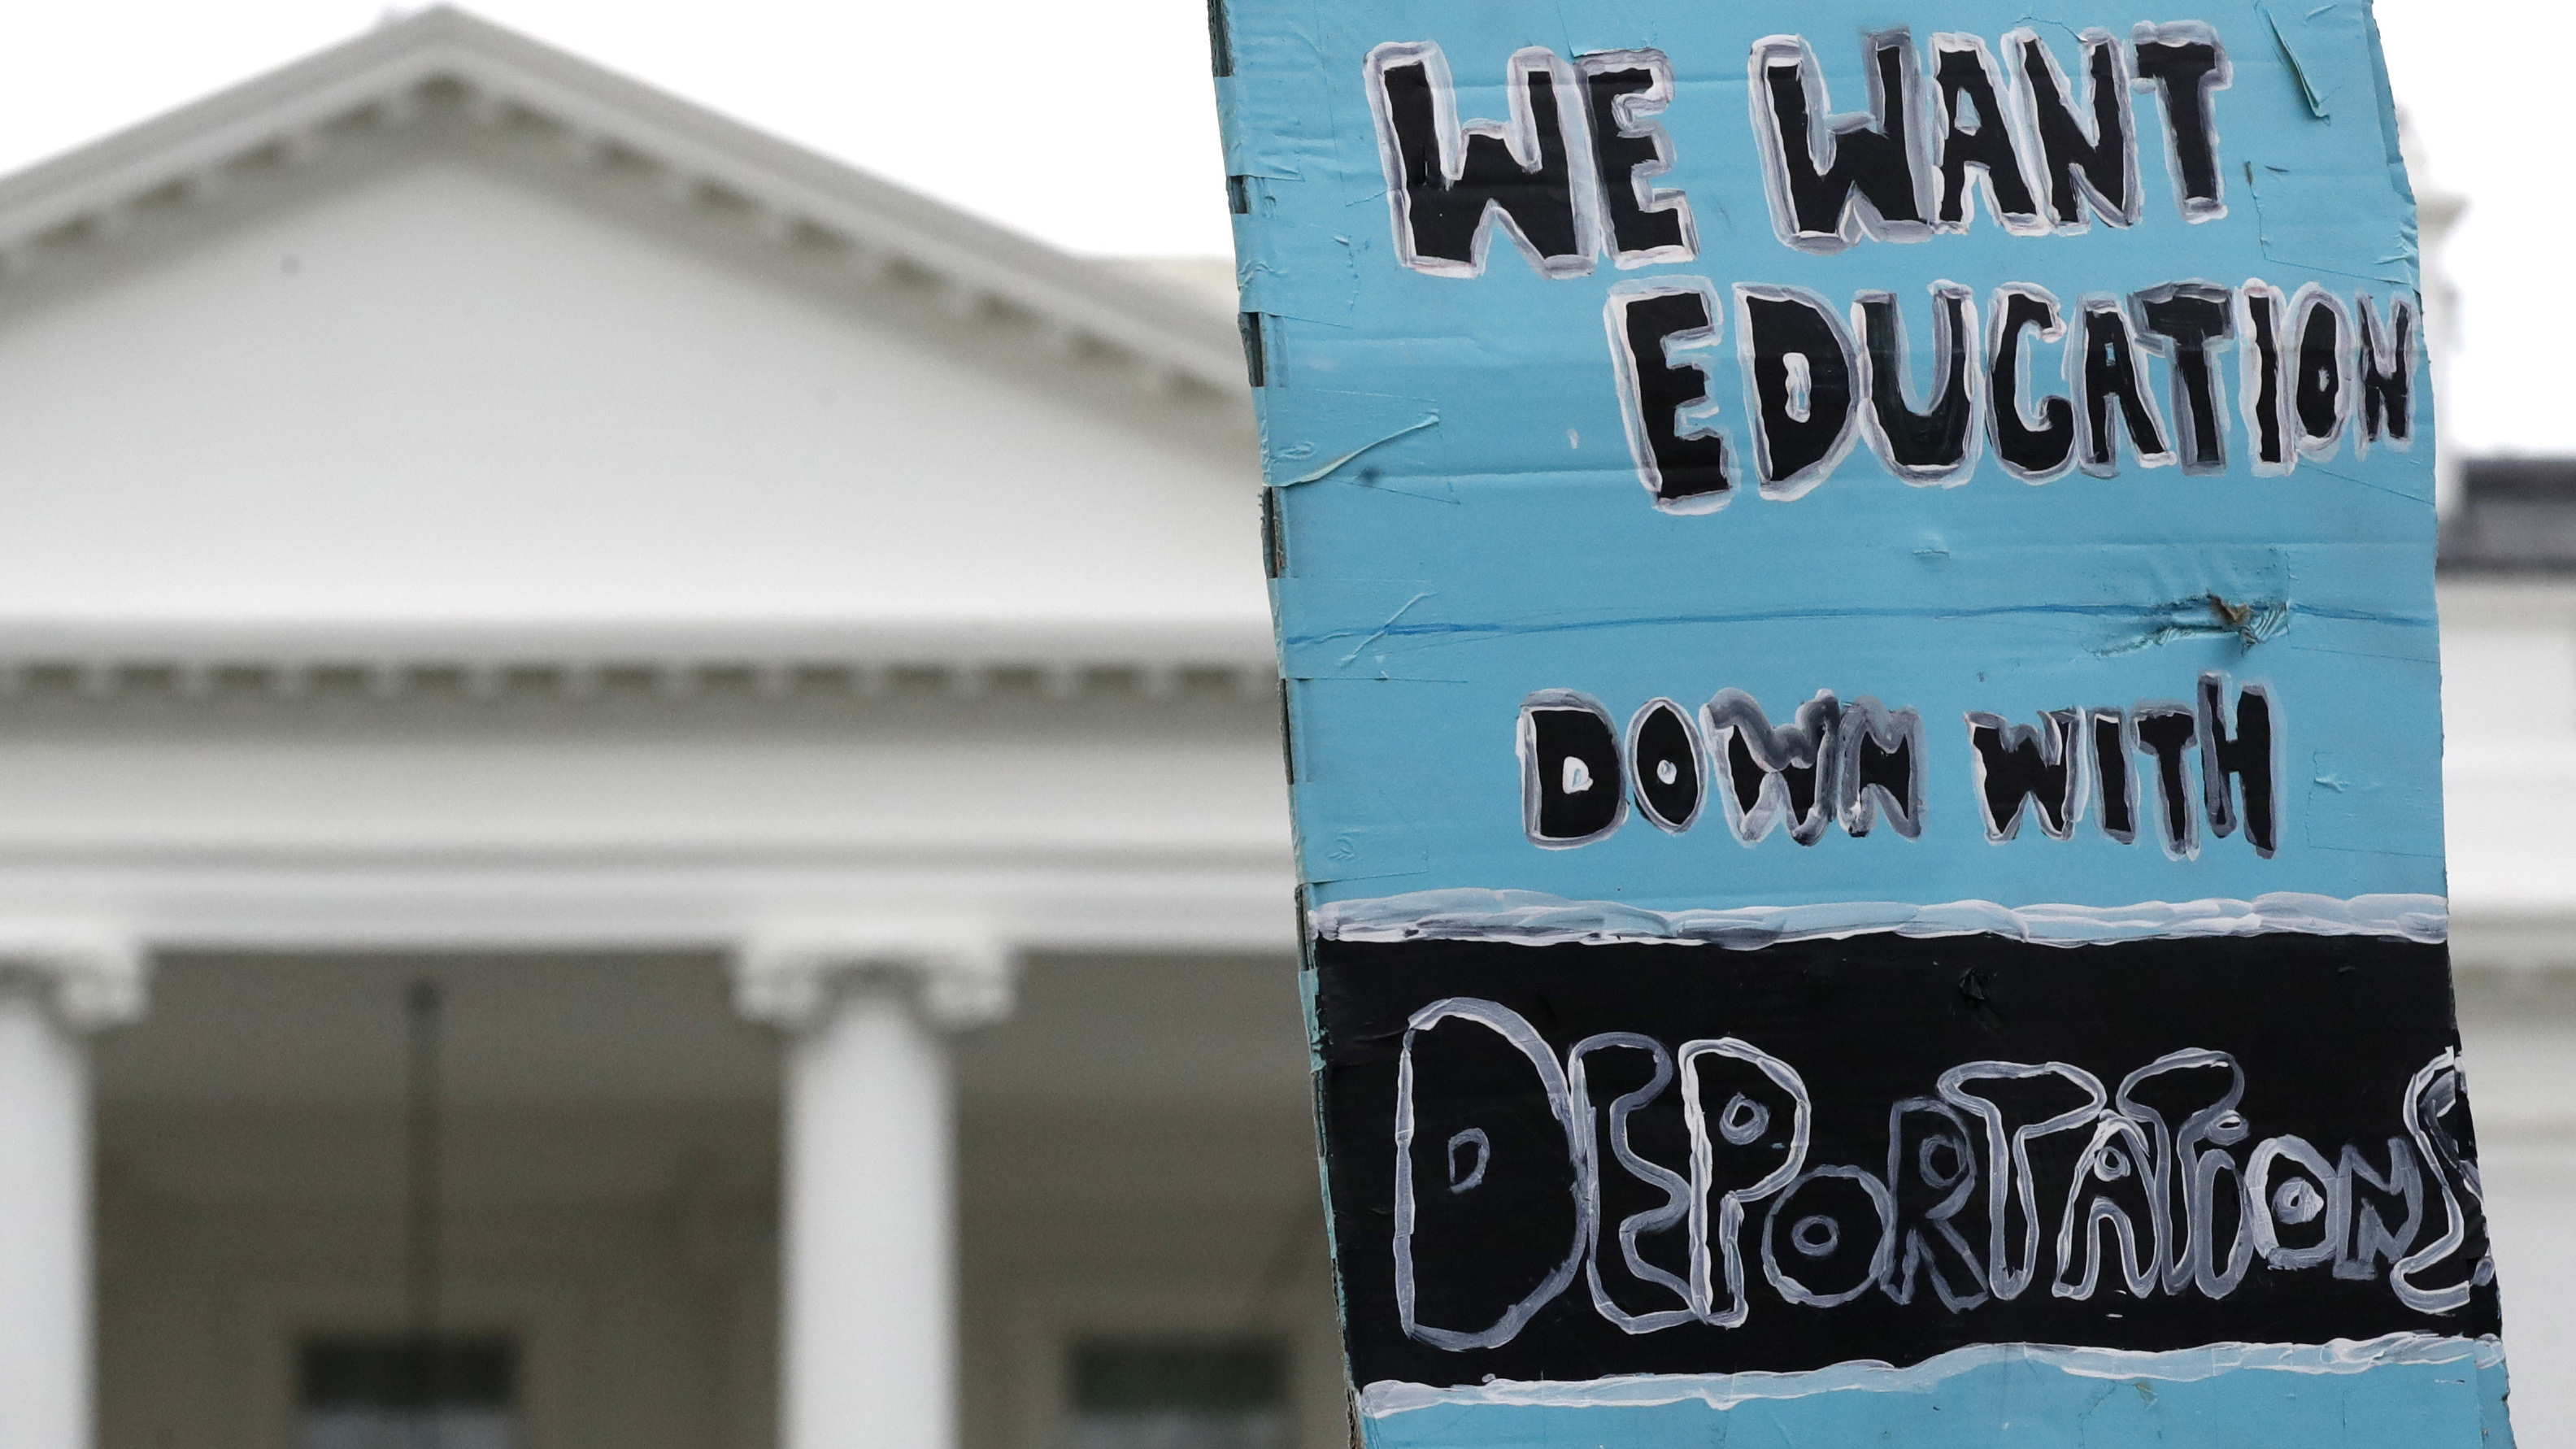 """A sign is held up by the White House in support of the DREAMers and the Deferred Action for Childhood Arrivals (DACA) program, on Sept. 5, when Attorney General Jeff Sessions announced the Trump administration will """"wind down"""" DACA."""